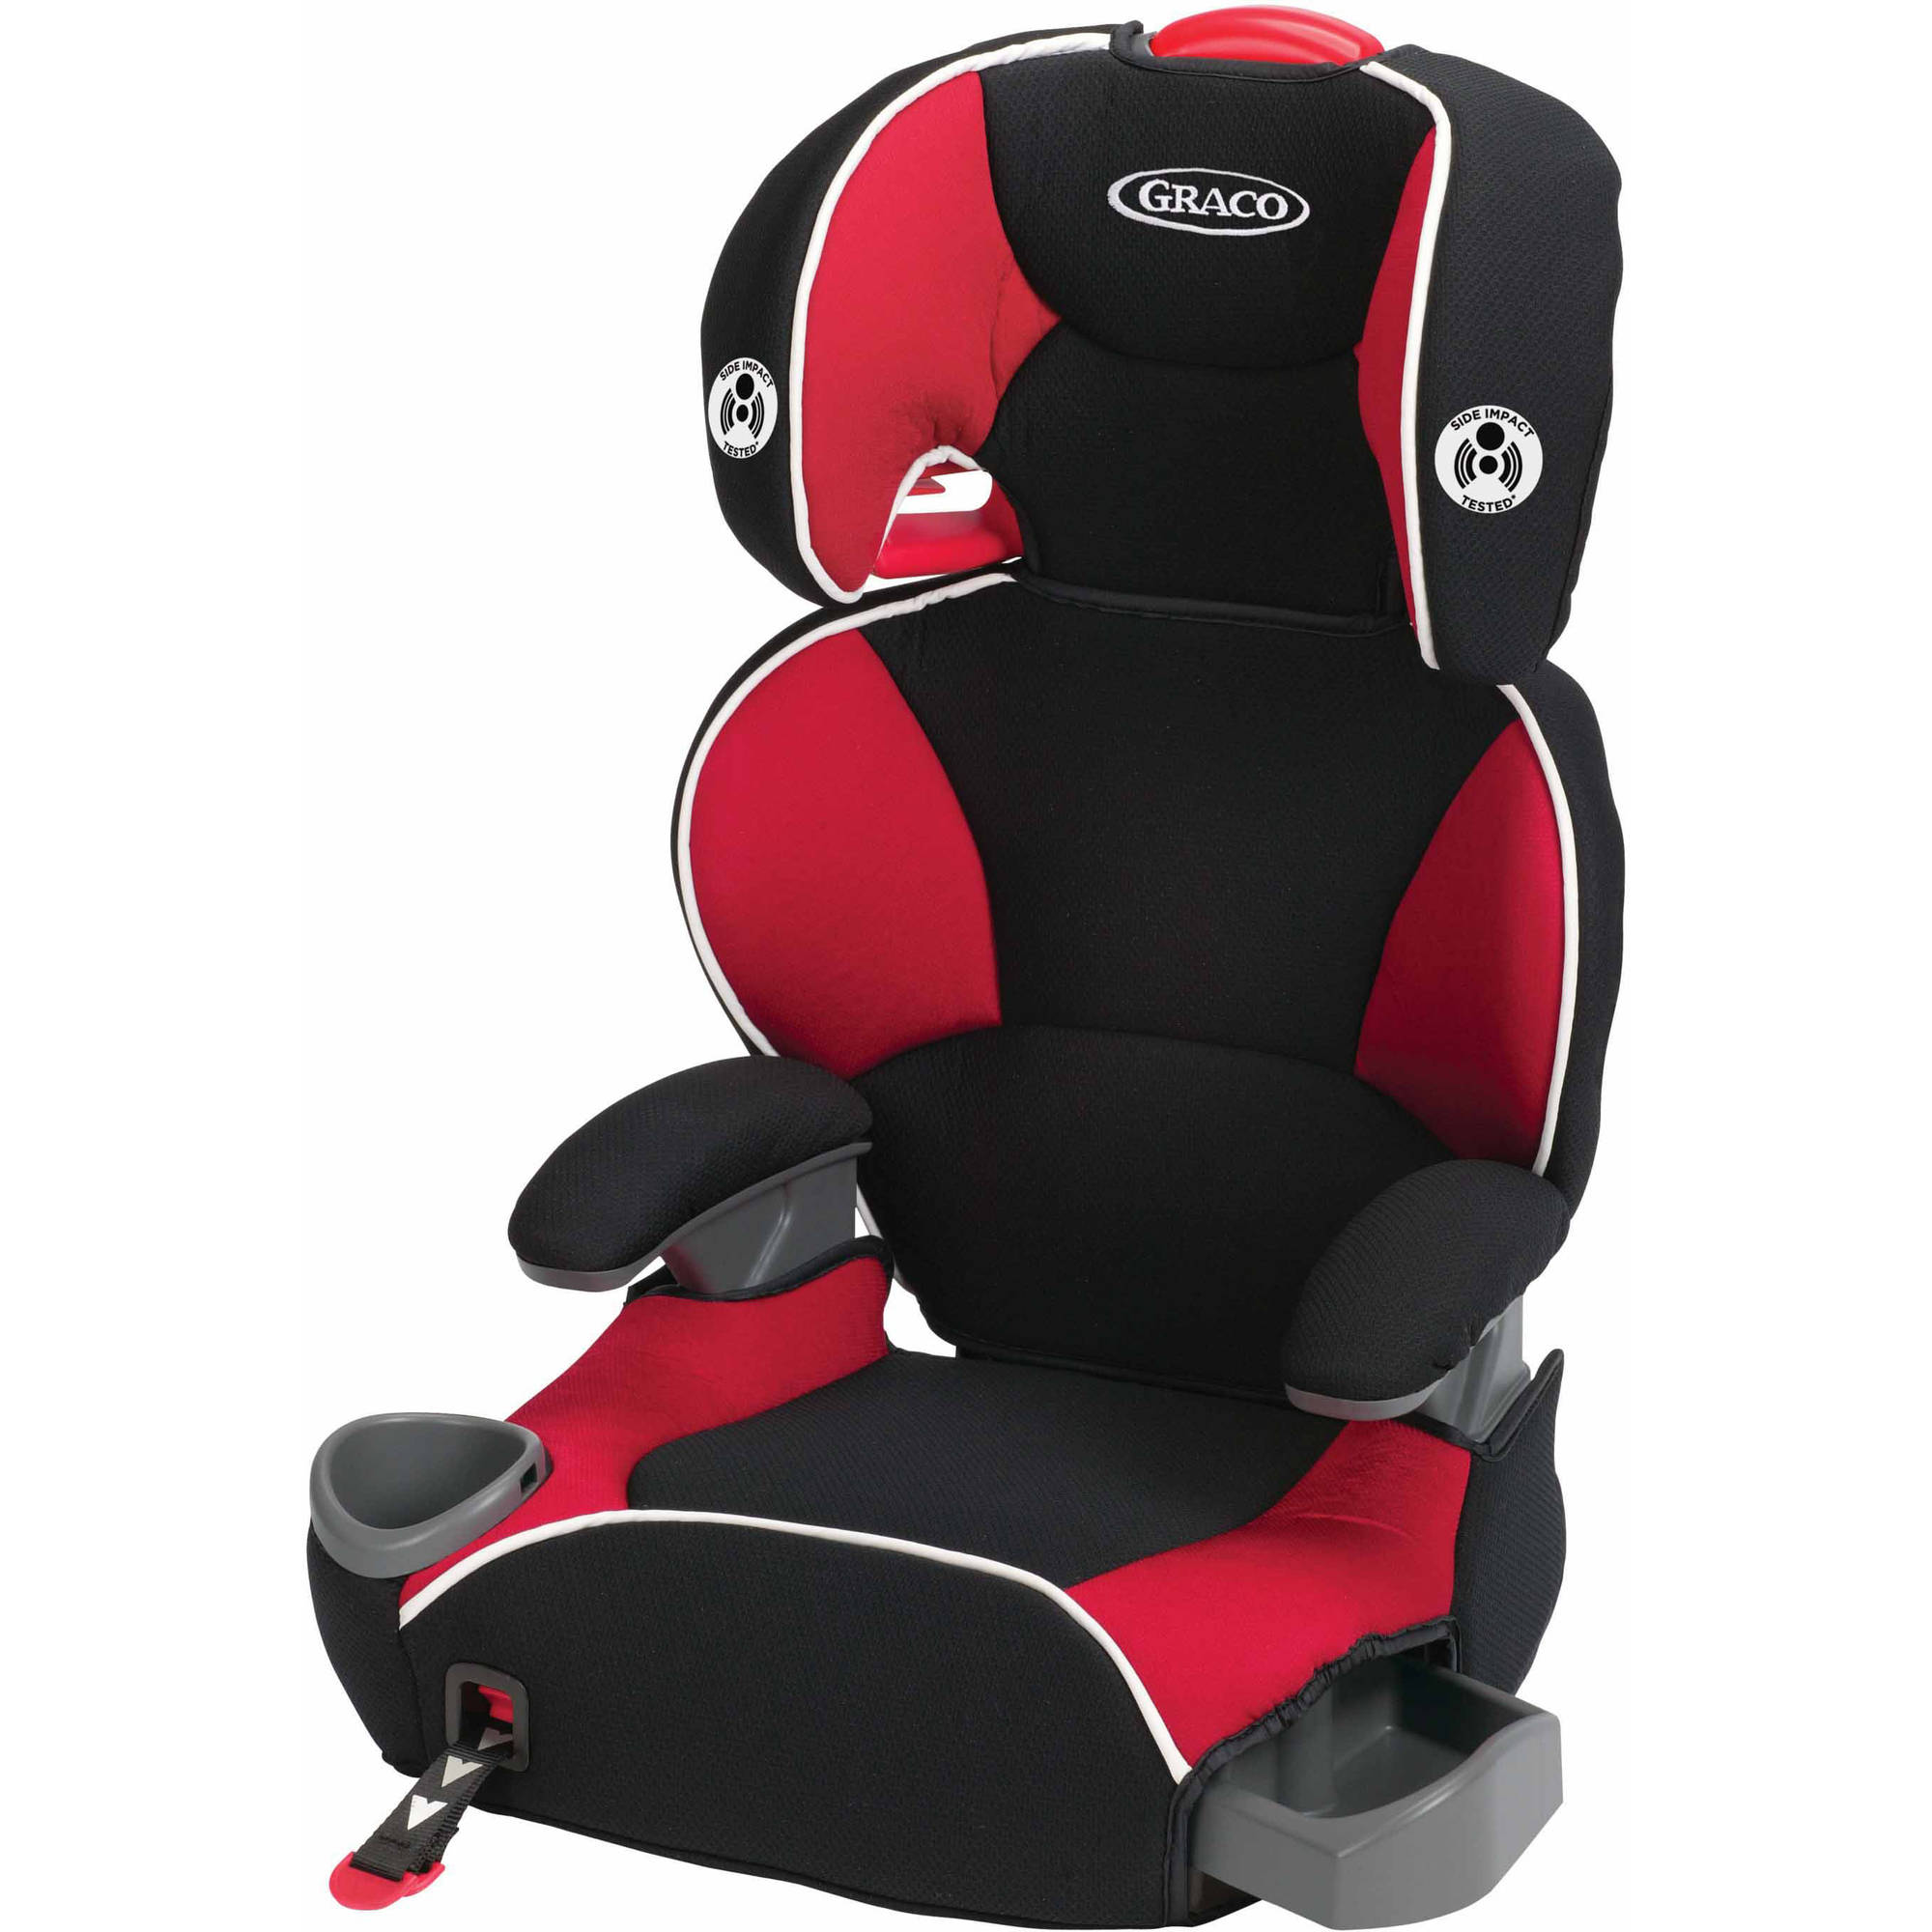 Graco AFFIX Backless Booster Seat with LATCH System, Atomic